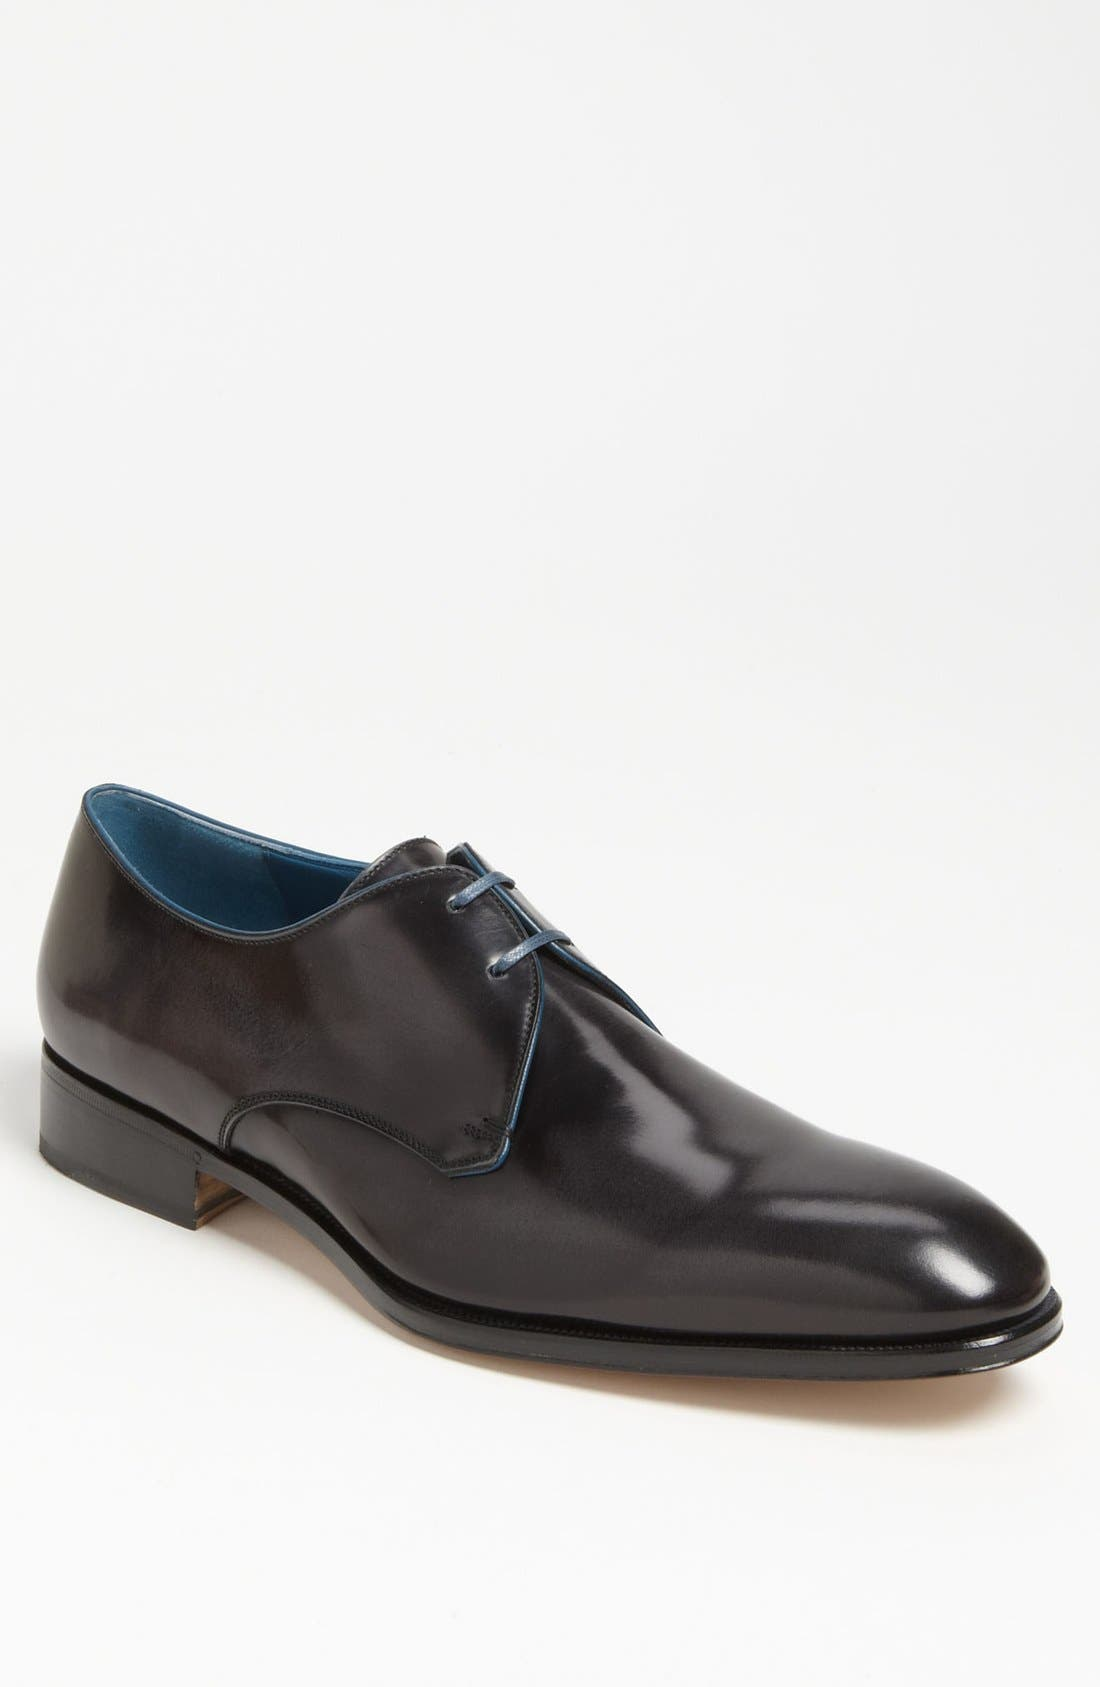 Main Image - Salvatore Ferragamo 'Tucker' Plain Toe Derby